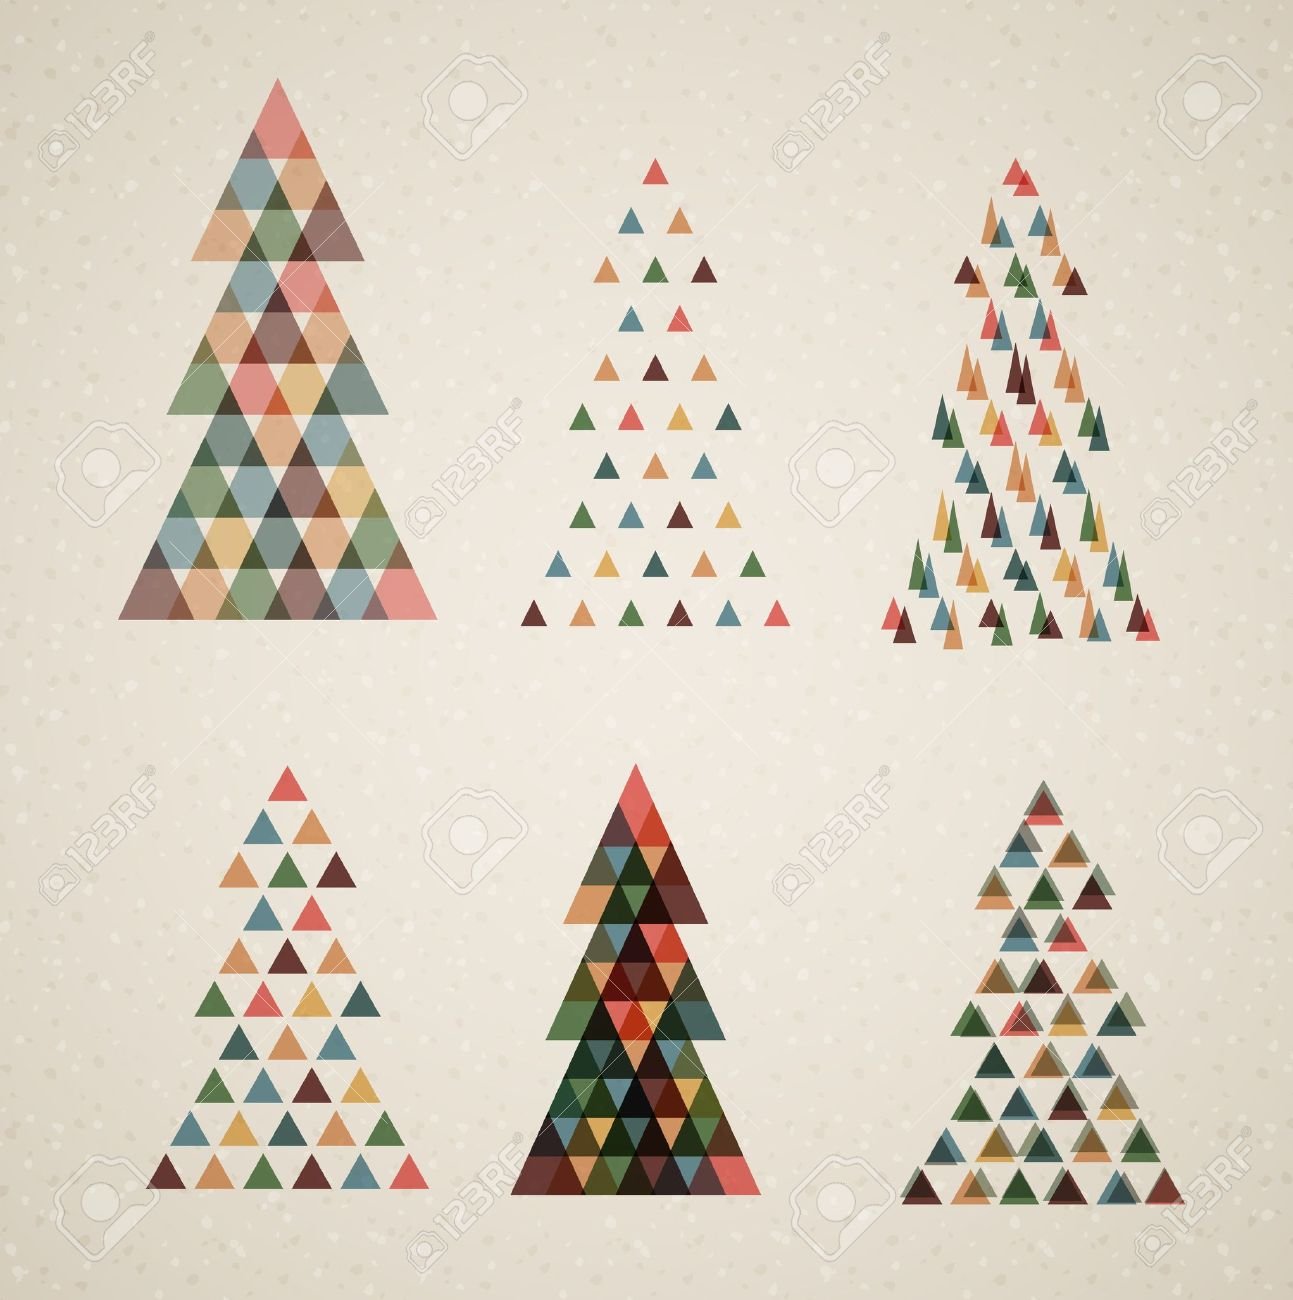 Collection of Vintage retro vector Christmas trees made from triangles Stock Vector - 16236015